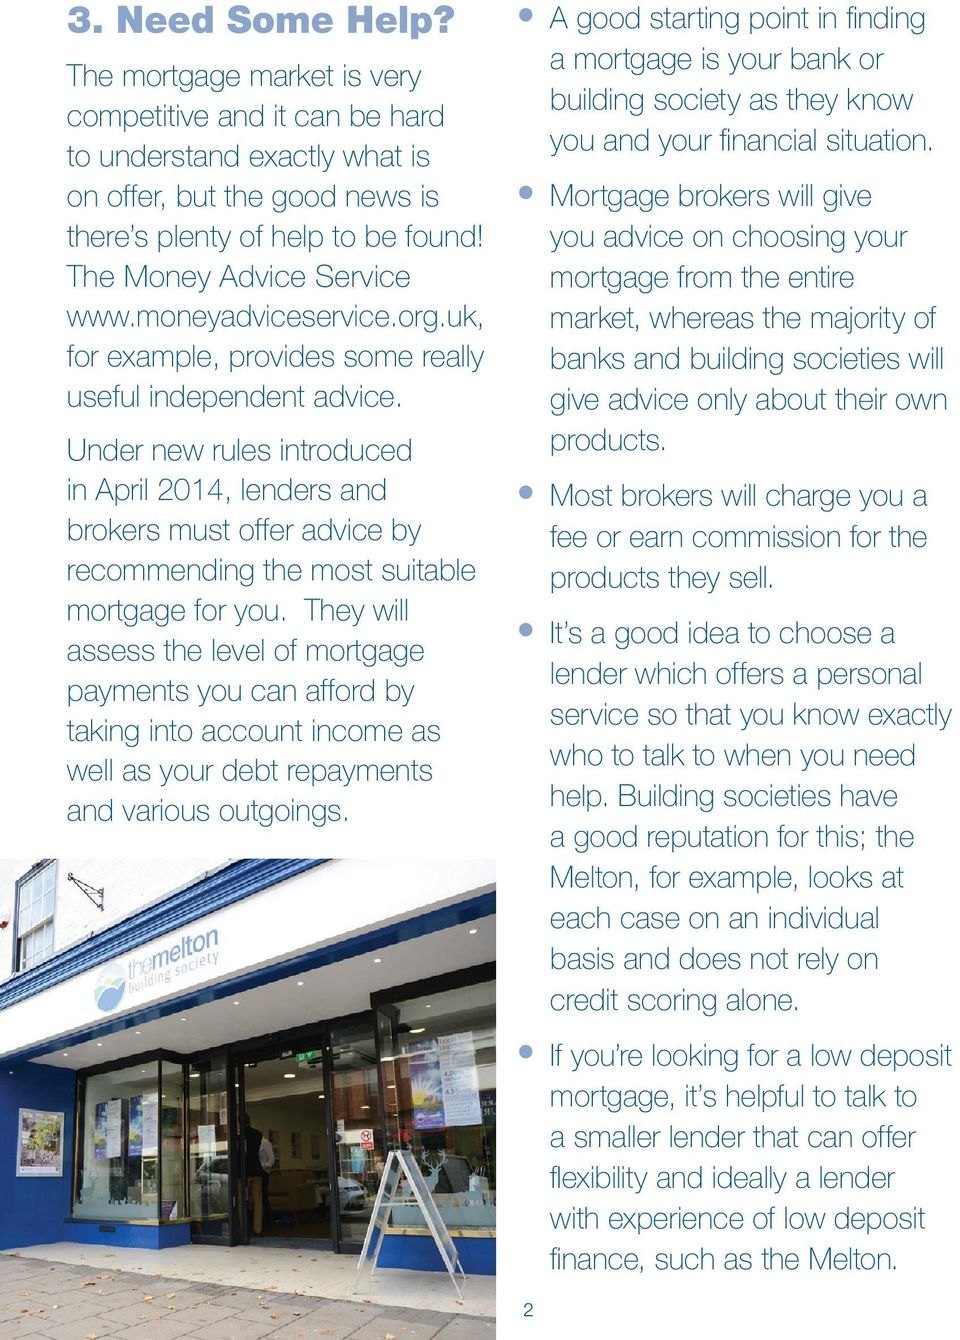 Under new rules introduced in April 2014, lenders and brokers must offer advice by recommending the most suitable mortgage for you.